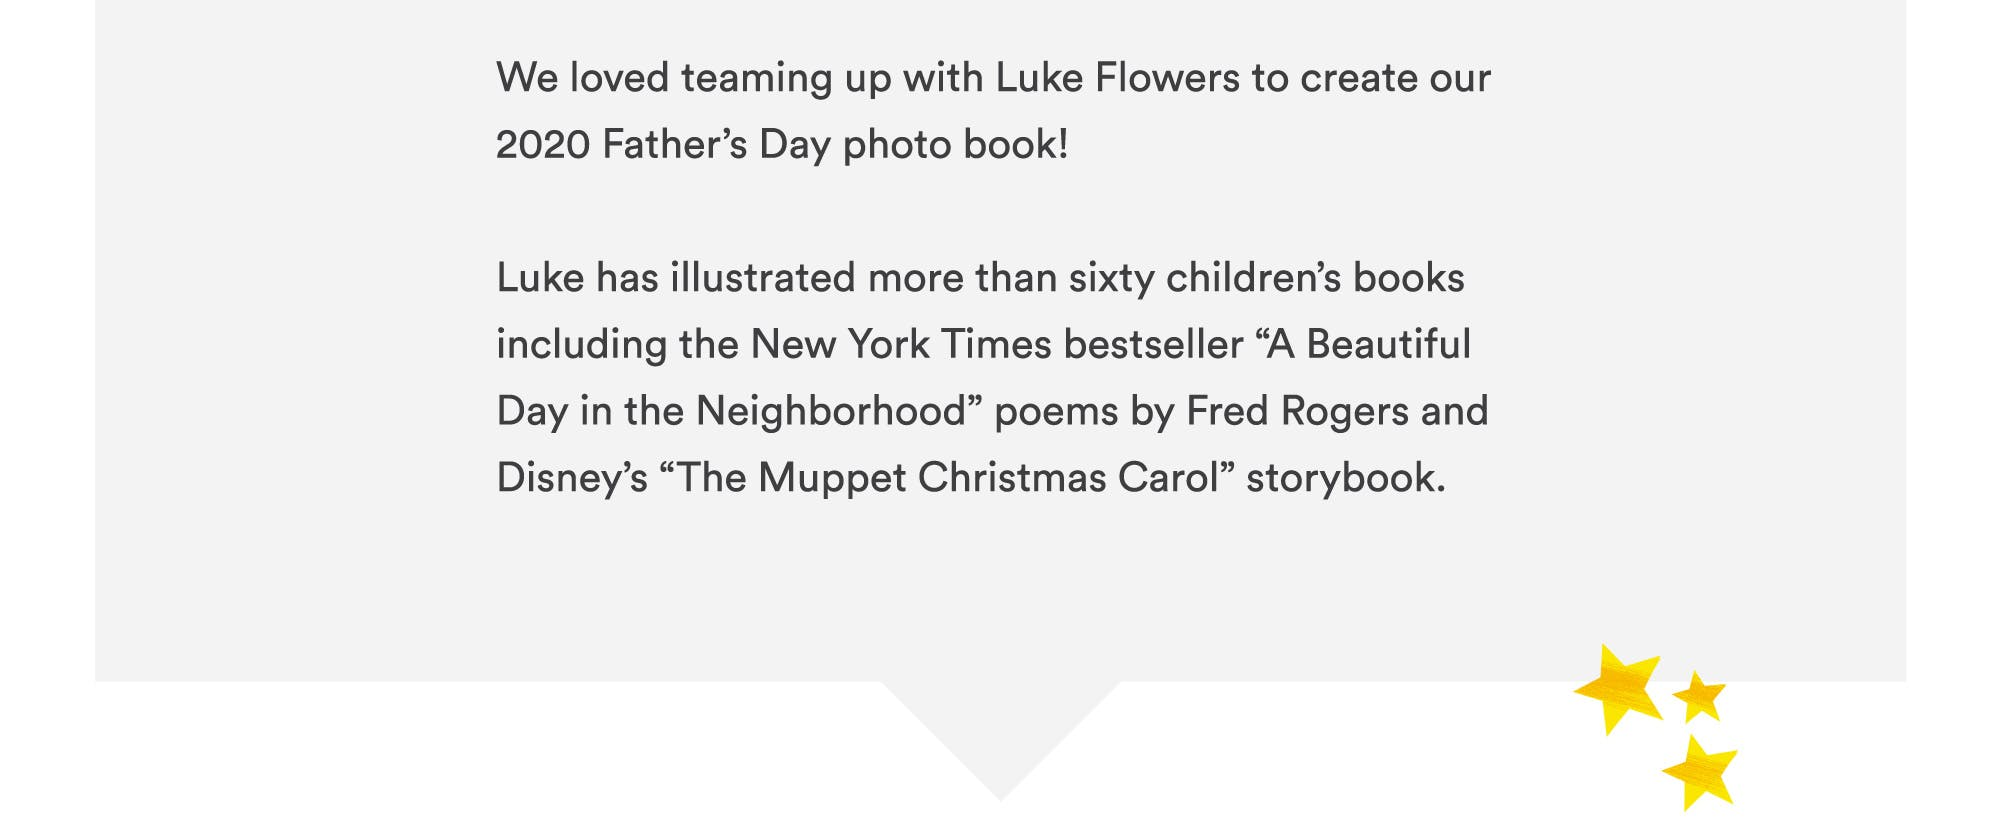 We teamed up with Luke Flowers to create our 2020 Father's Day photo book!